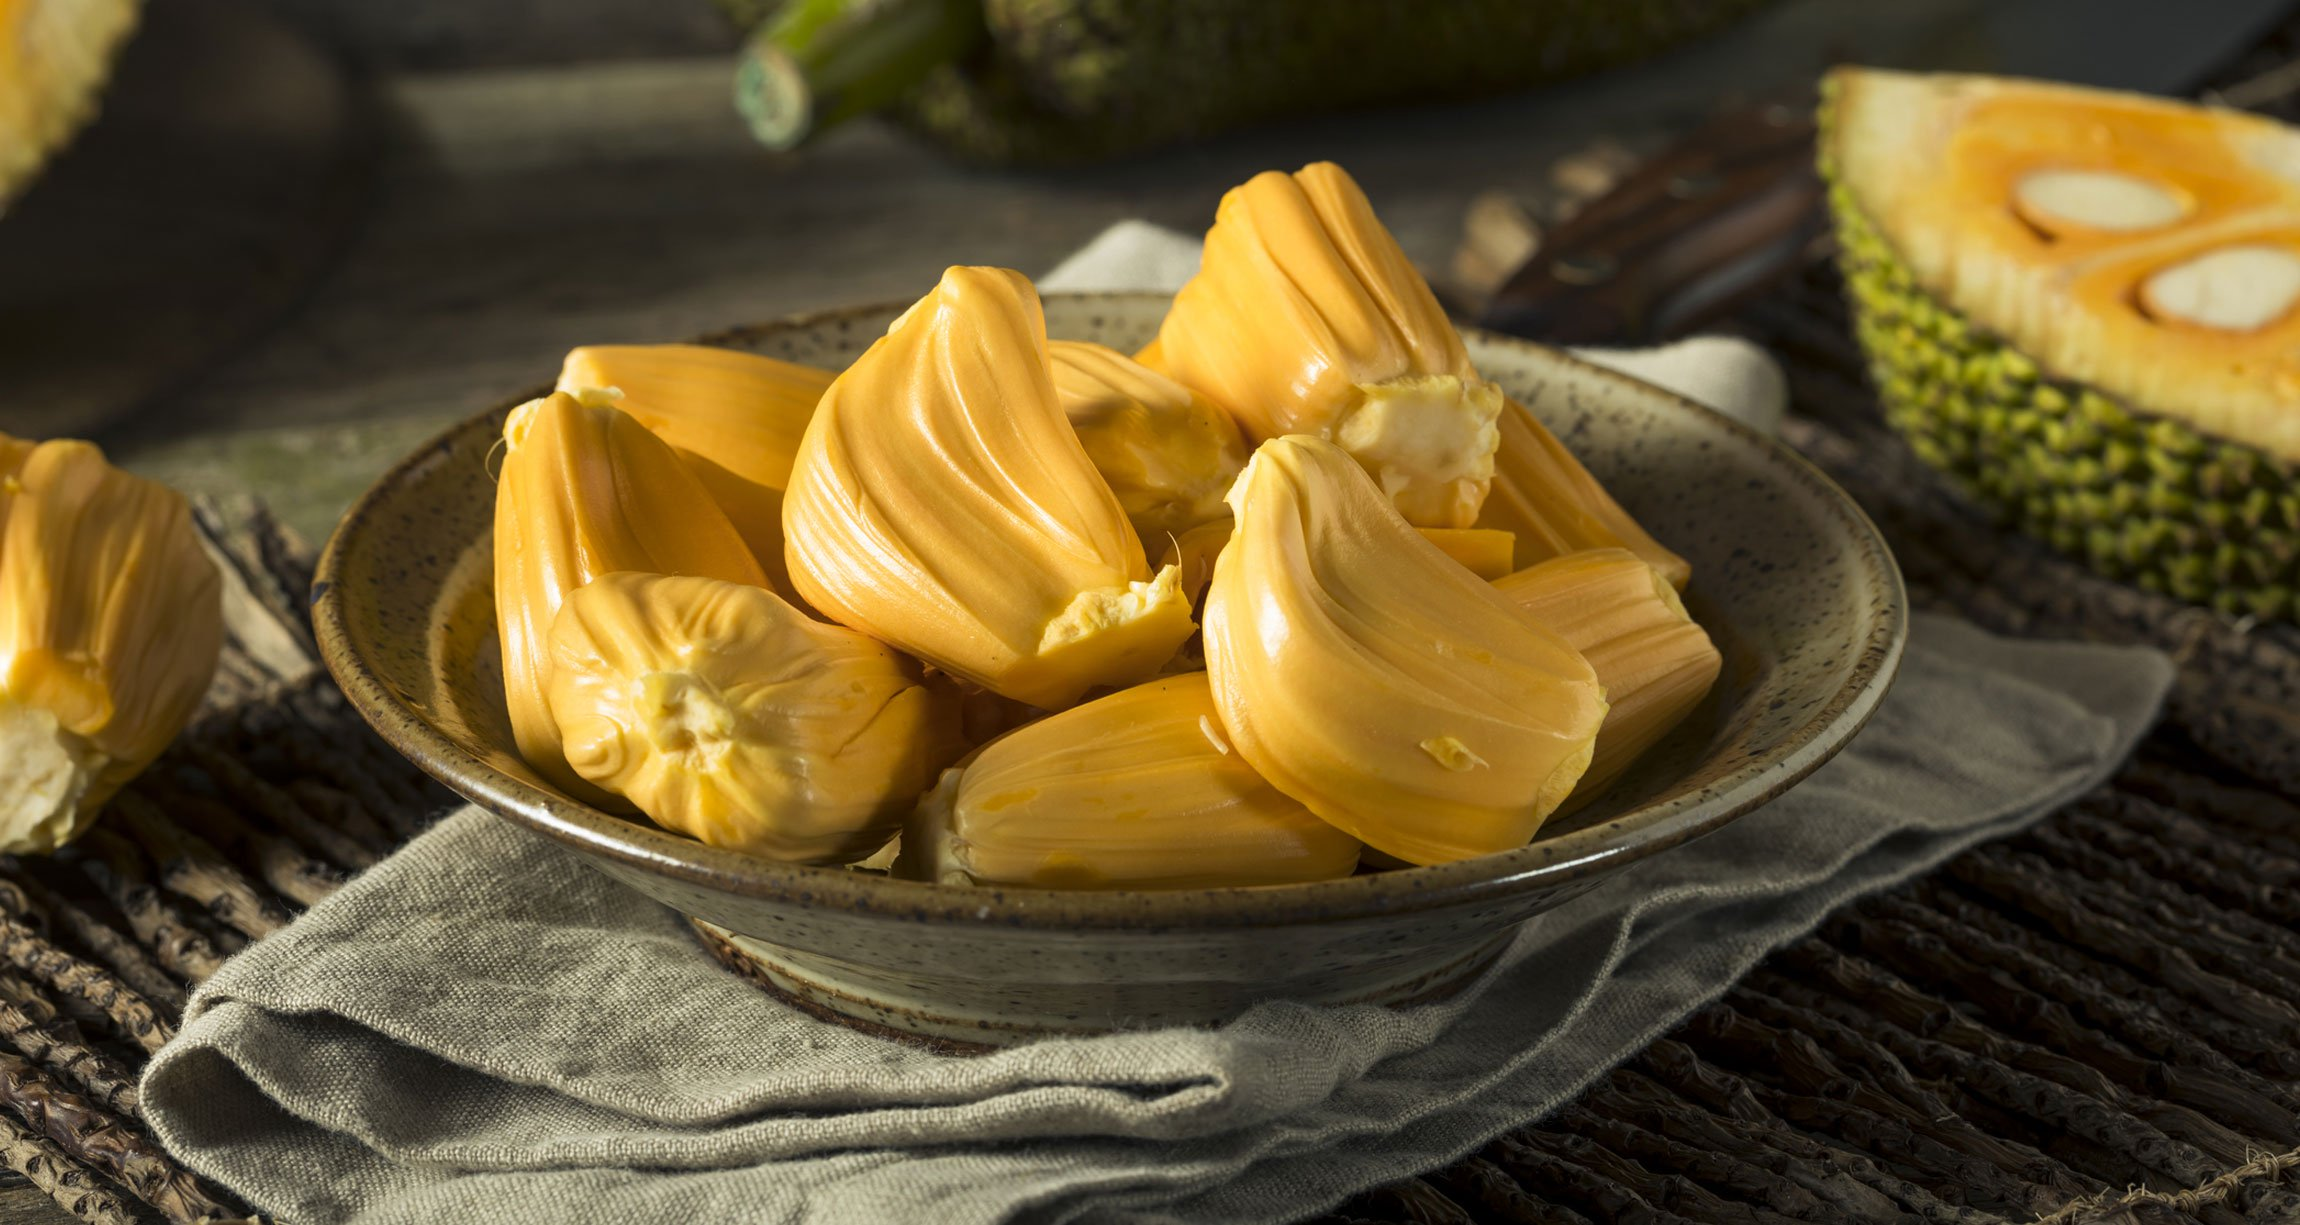 The Amazing Health Benefits of the Jackfruit